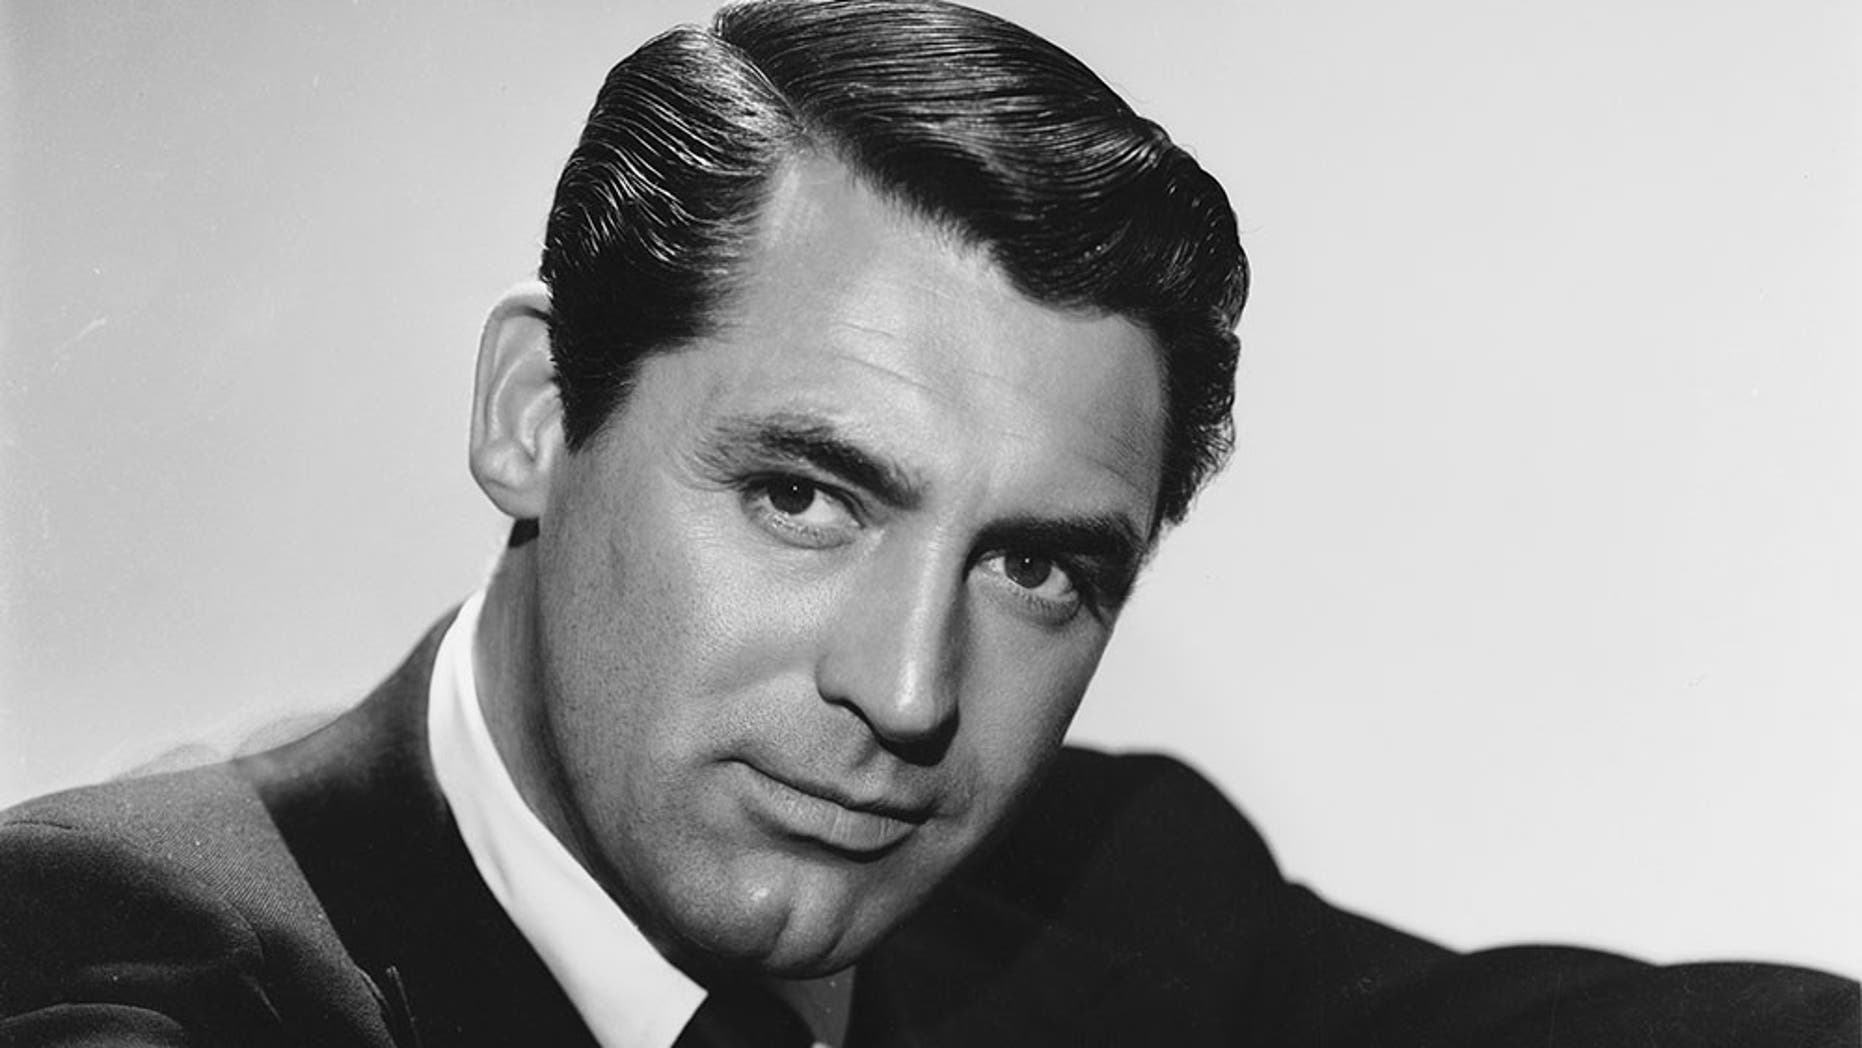 Cary Grant, here in 1940, was born Archibald Leach in Bristol, England. He began his career as an acrobat, also starring in a number of Broadway musicals.